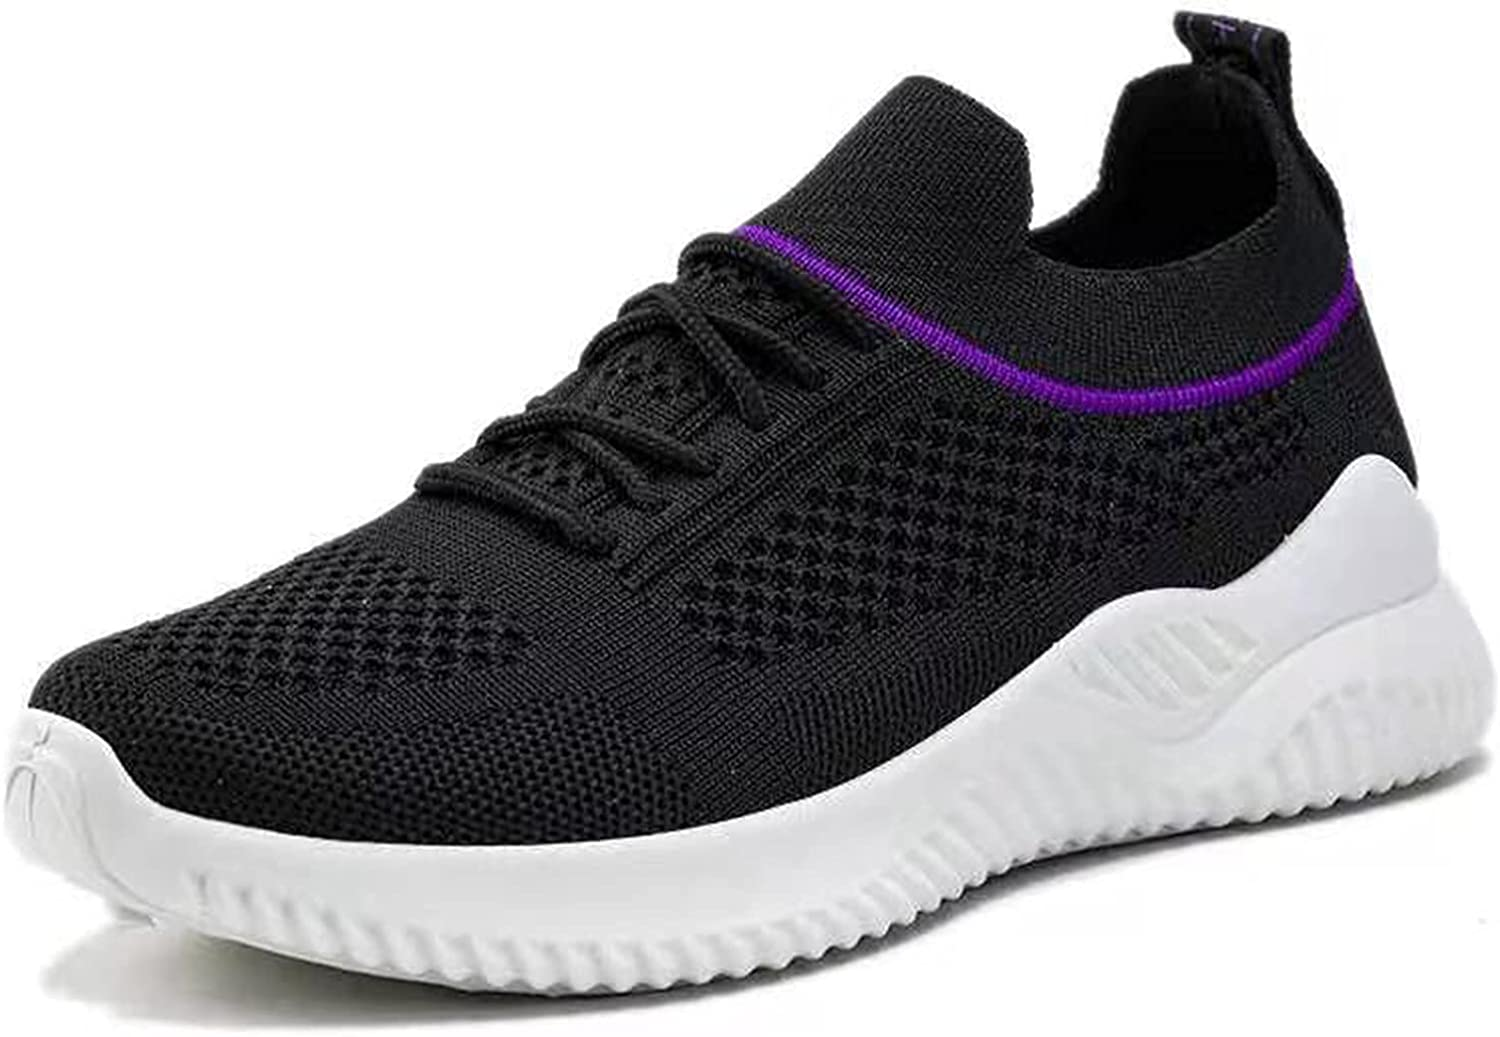 Pzhhzpingg Sneakers for Women Walking Shoes Slip On Casual Shoes Solid Color Breathe Soft Lace Up Wedge Outdoor Sport Shoes